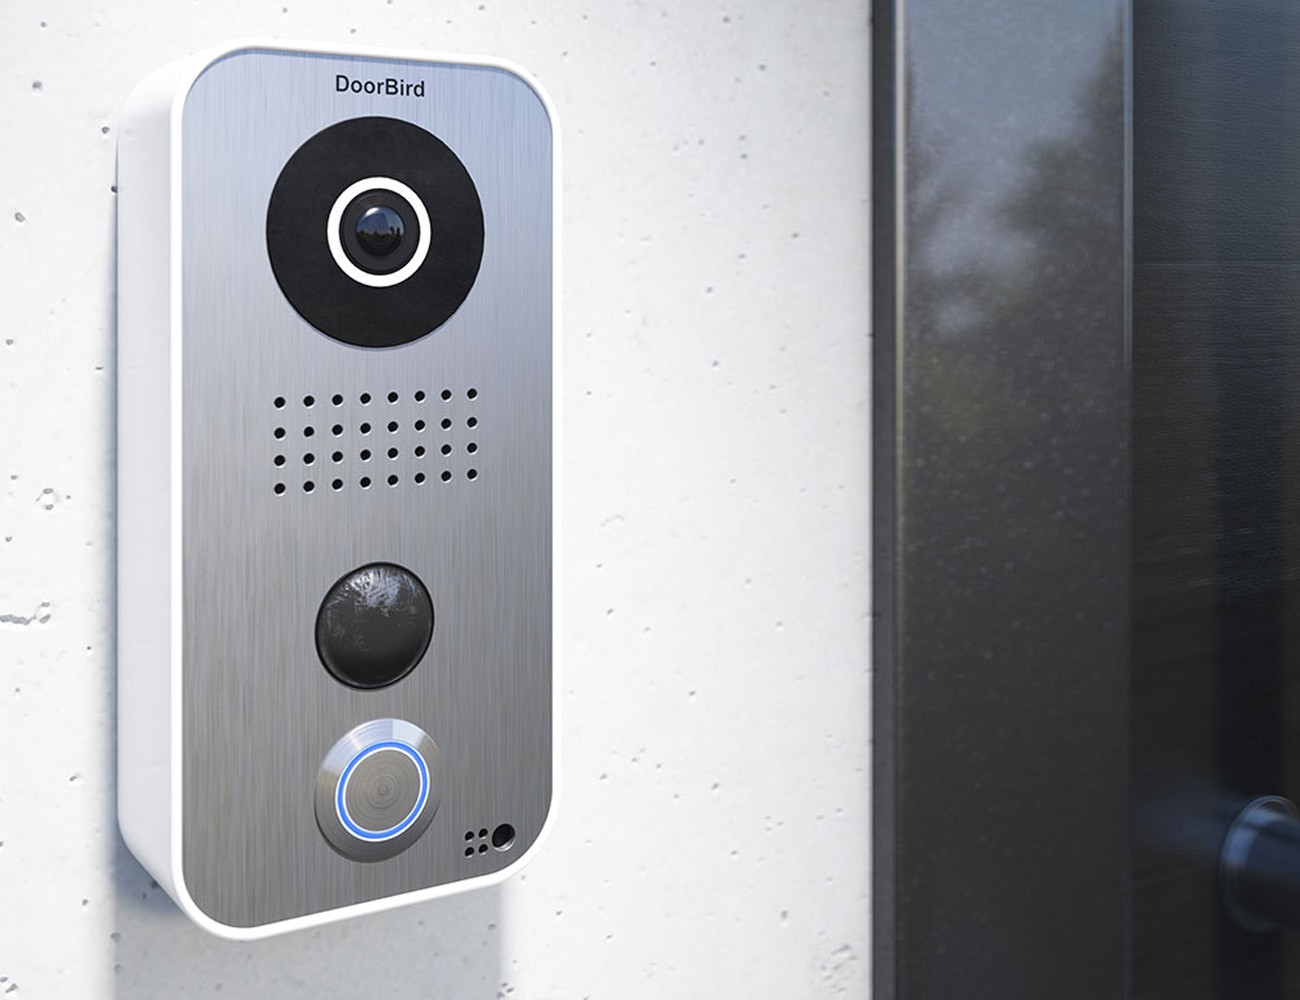 DoorBird Home Automation